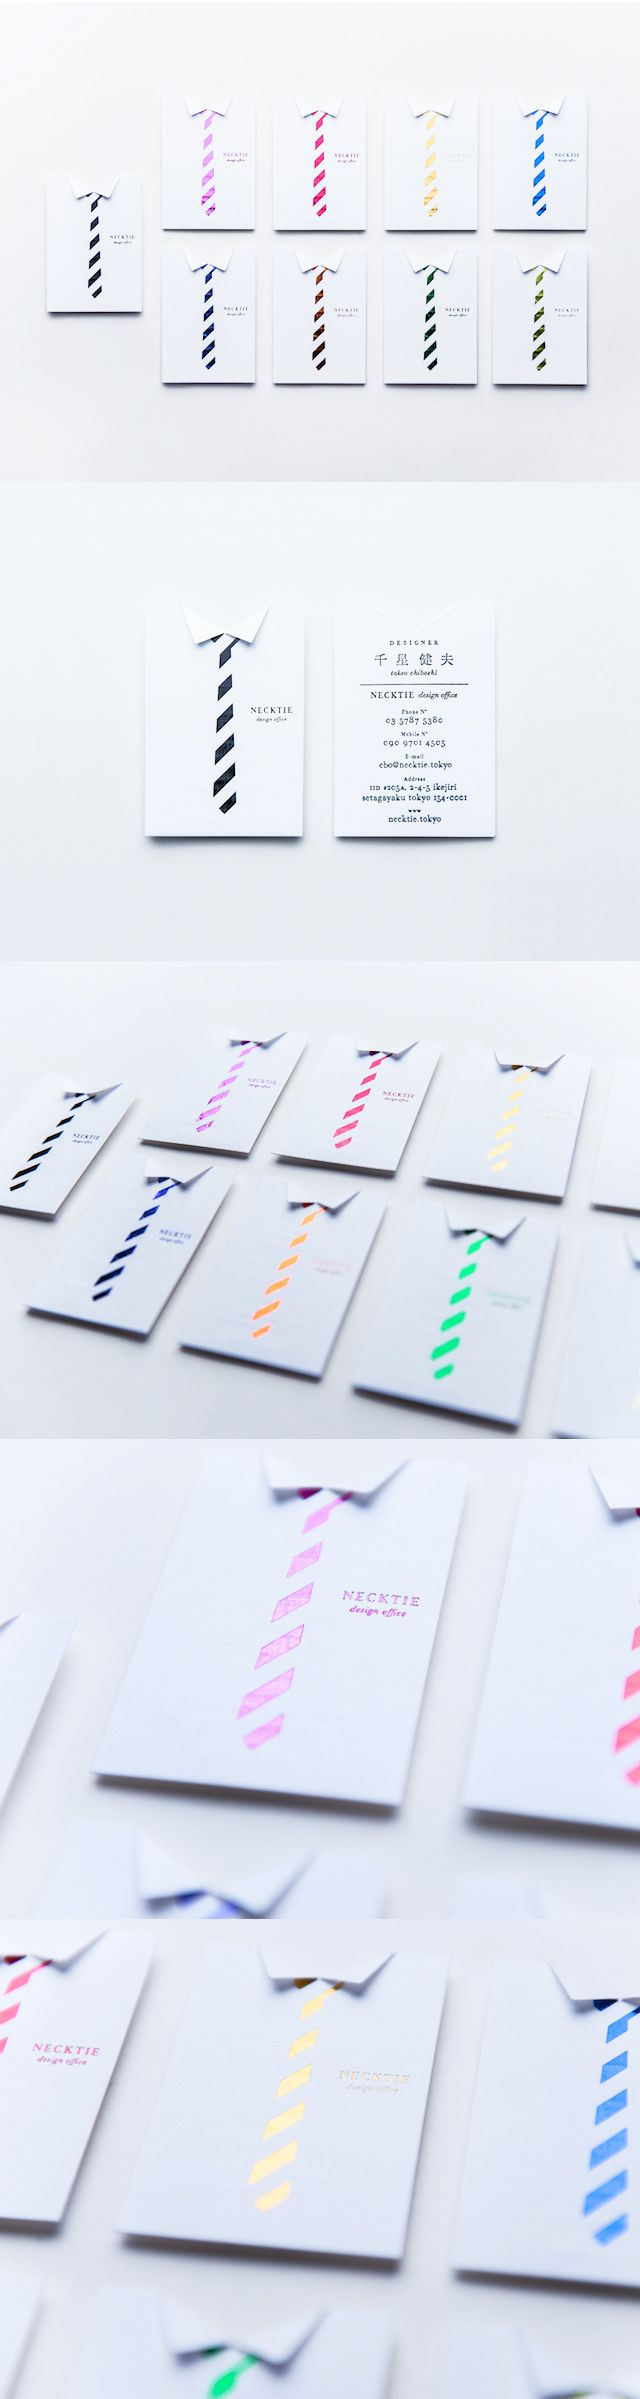 Necktie Business Cards